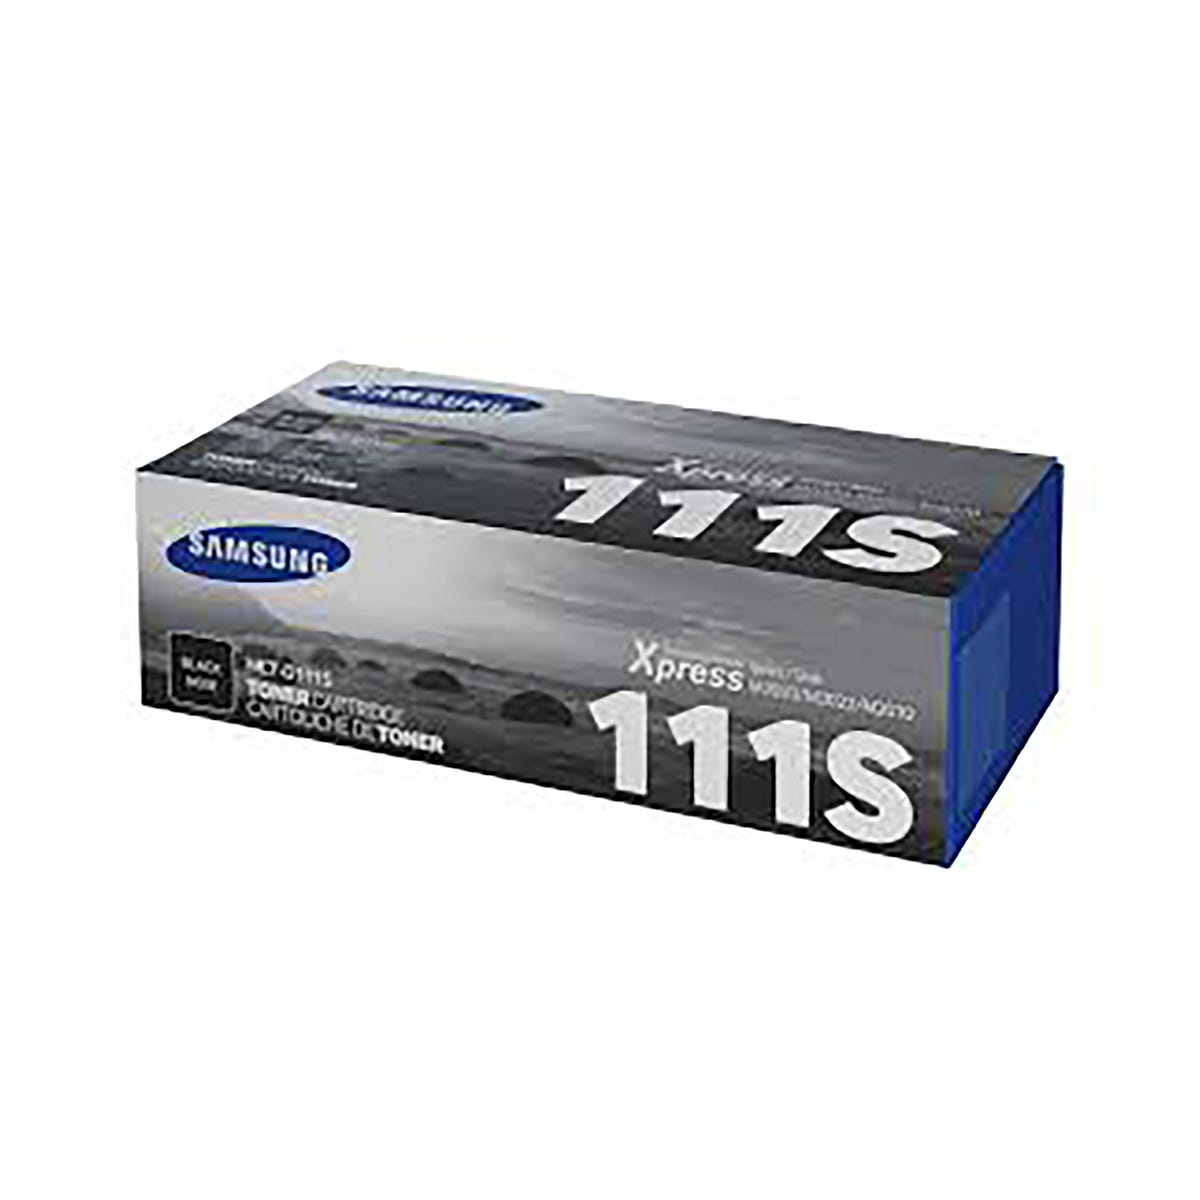 Image of Samsung D111s Toner for Samsung M2020 Printer, Black